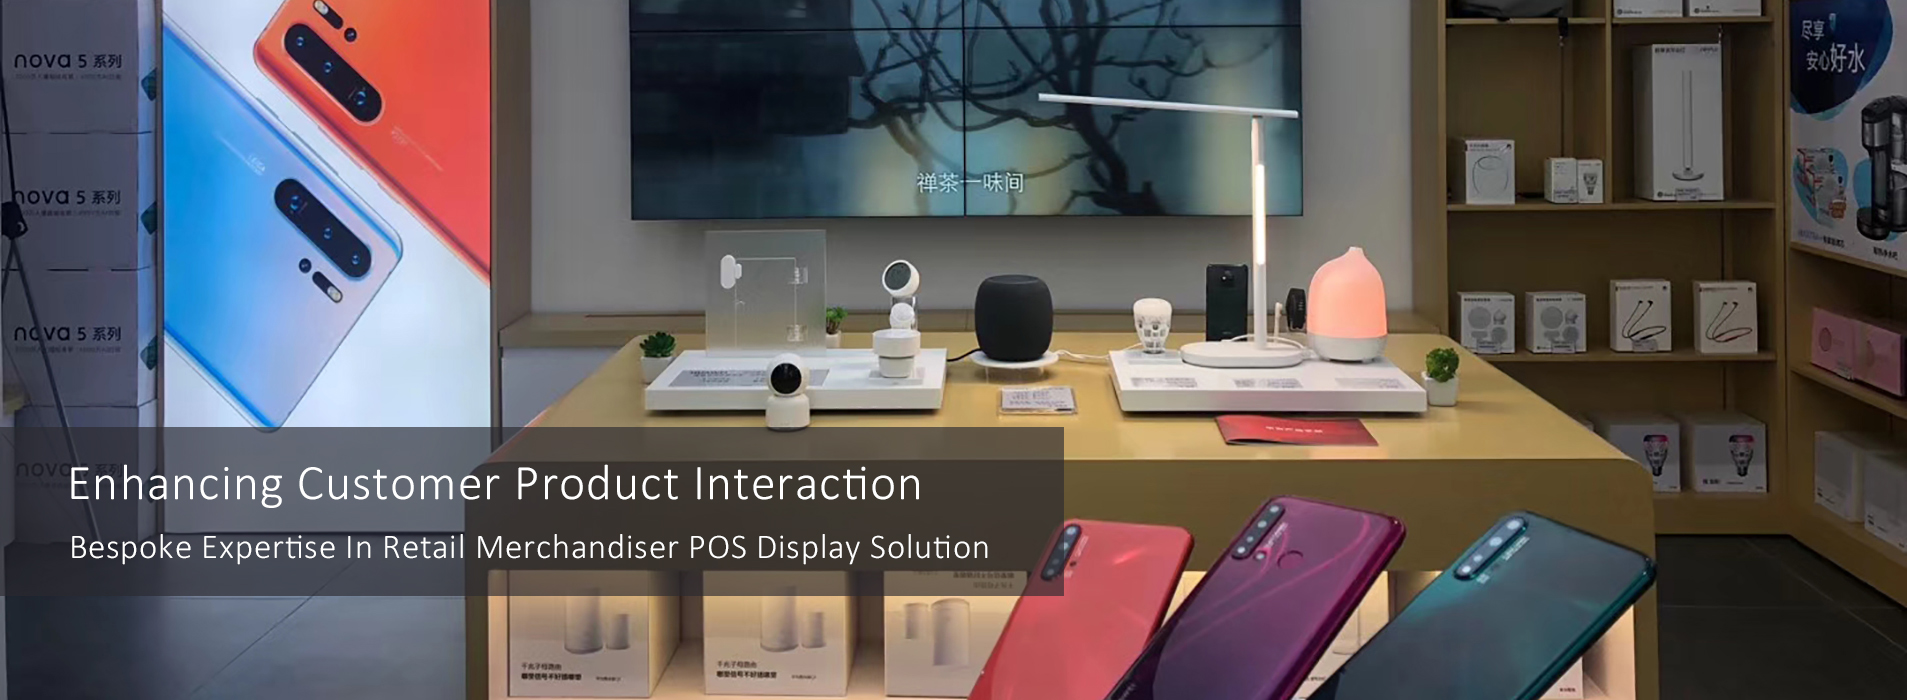 RECHI bespoke expertise in retail pop display solution for branding electronic store